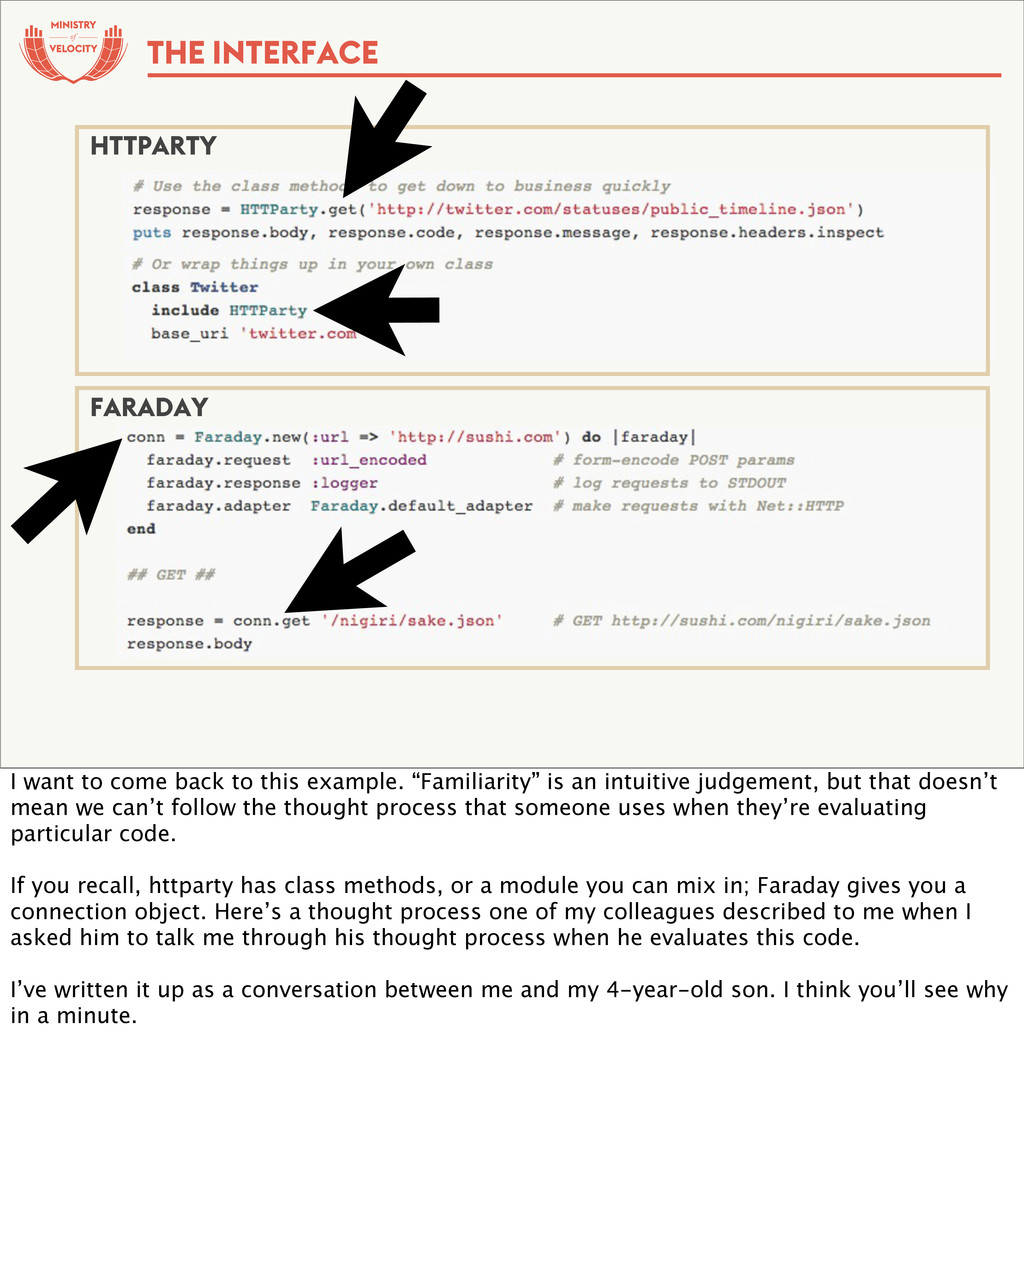 of THE INTERFACE HTTPARTY FARADAY I want to com...